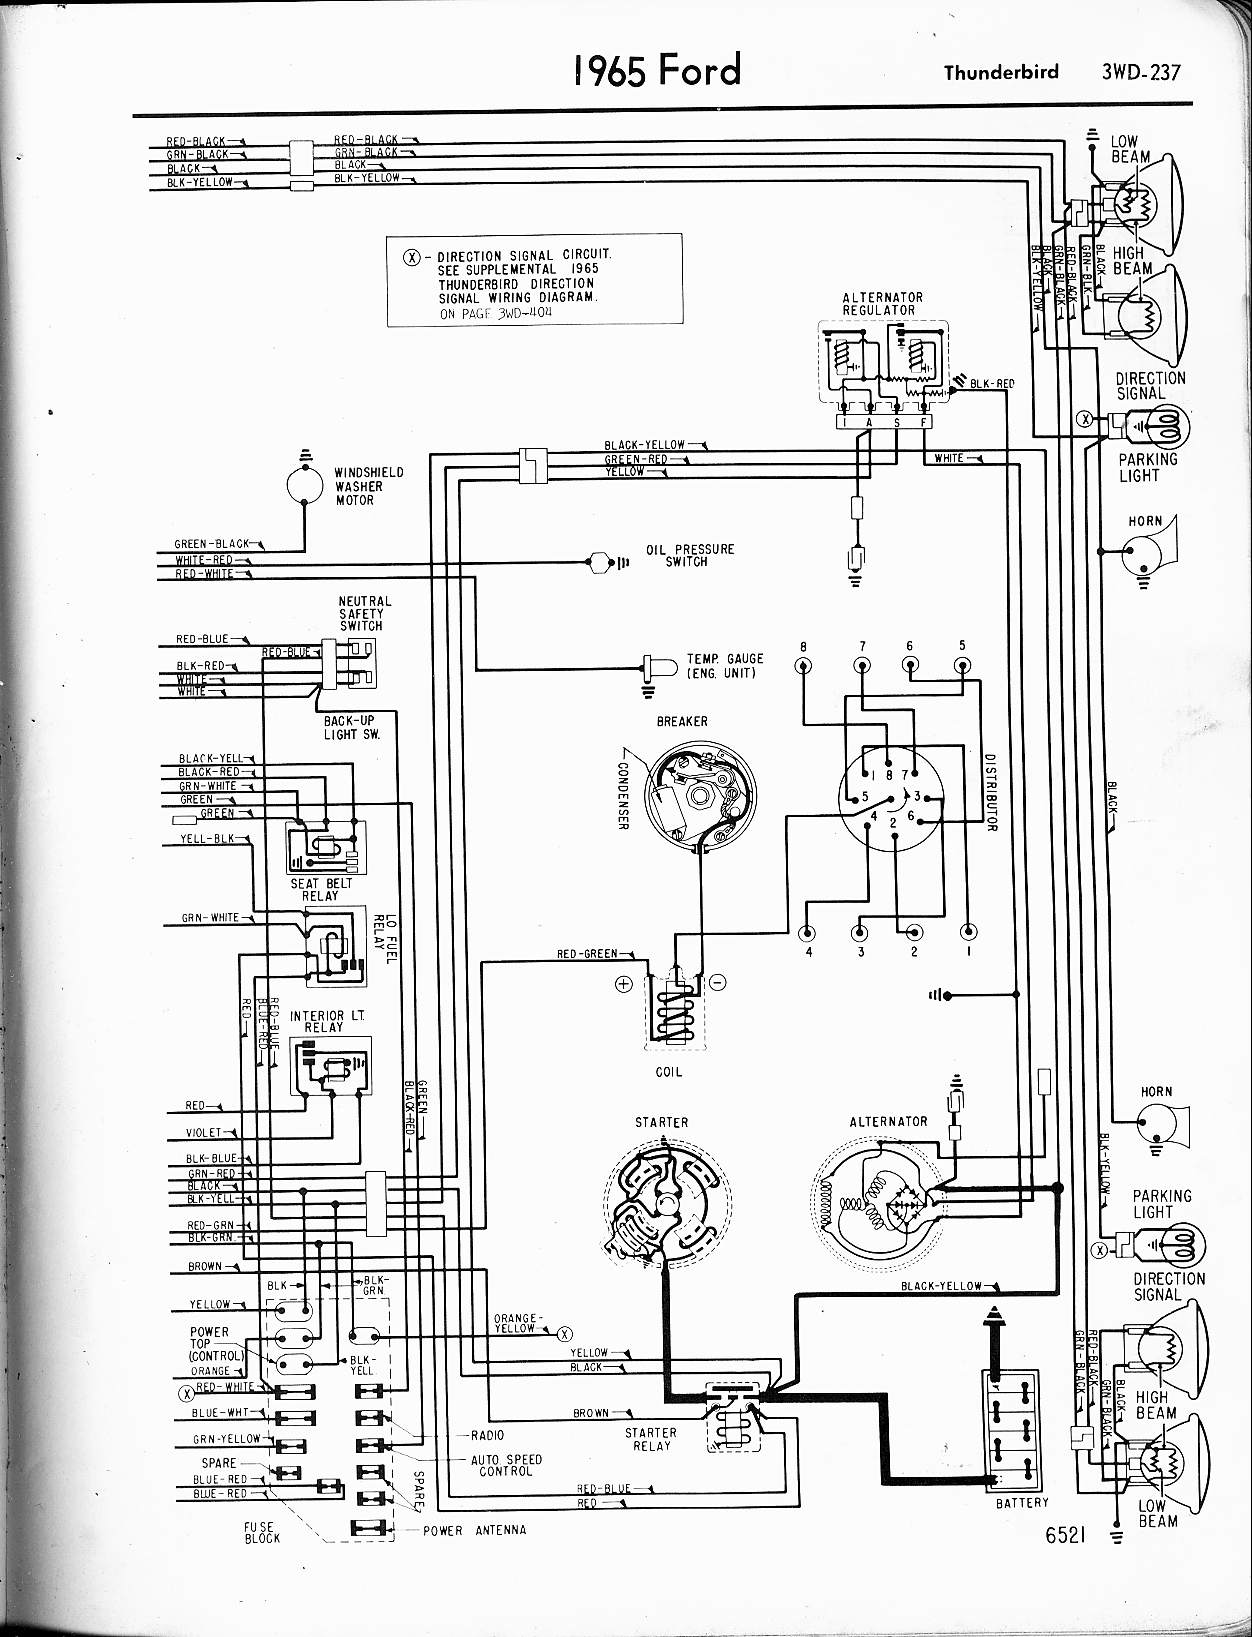 MWire5765 237 1965 f 100 alt gauge 70 amp circuit breaker ford truck 1966 ford truck wiring diagram at eliteediting.co